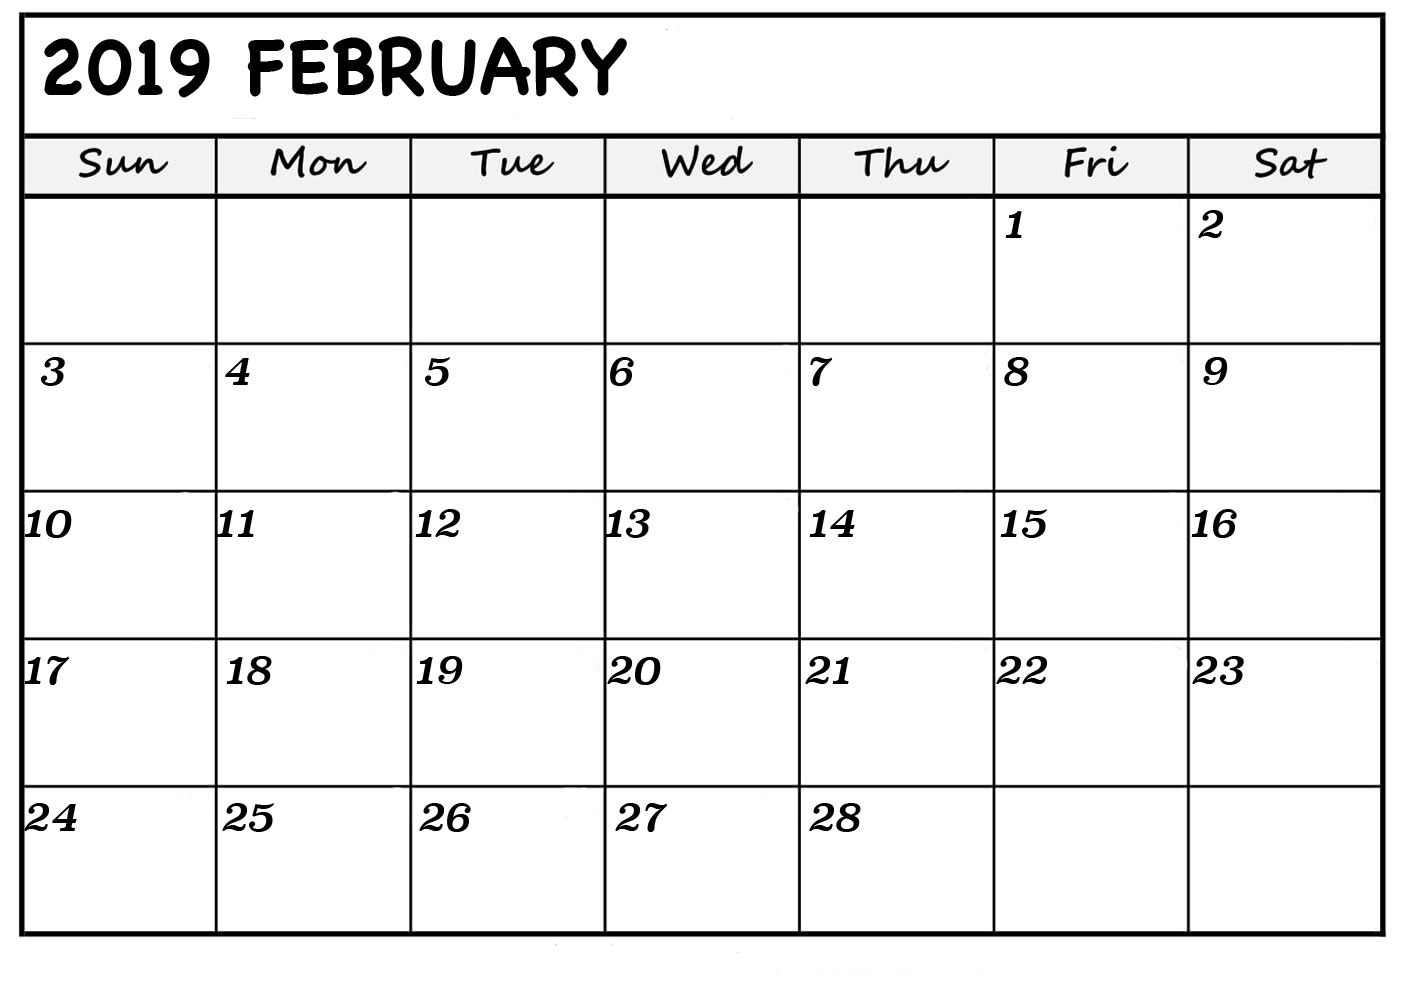 Pdf February 2019 Calendar download february 2019 printable calendar pdf excel word::February